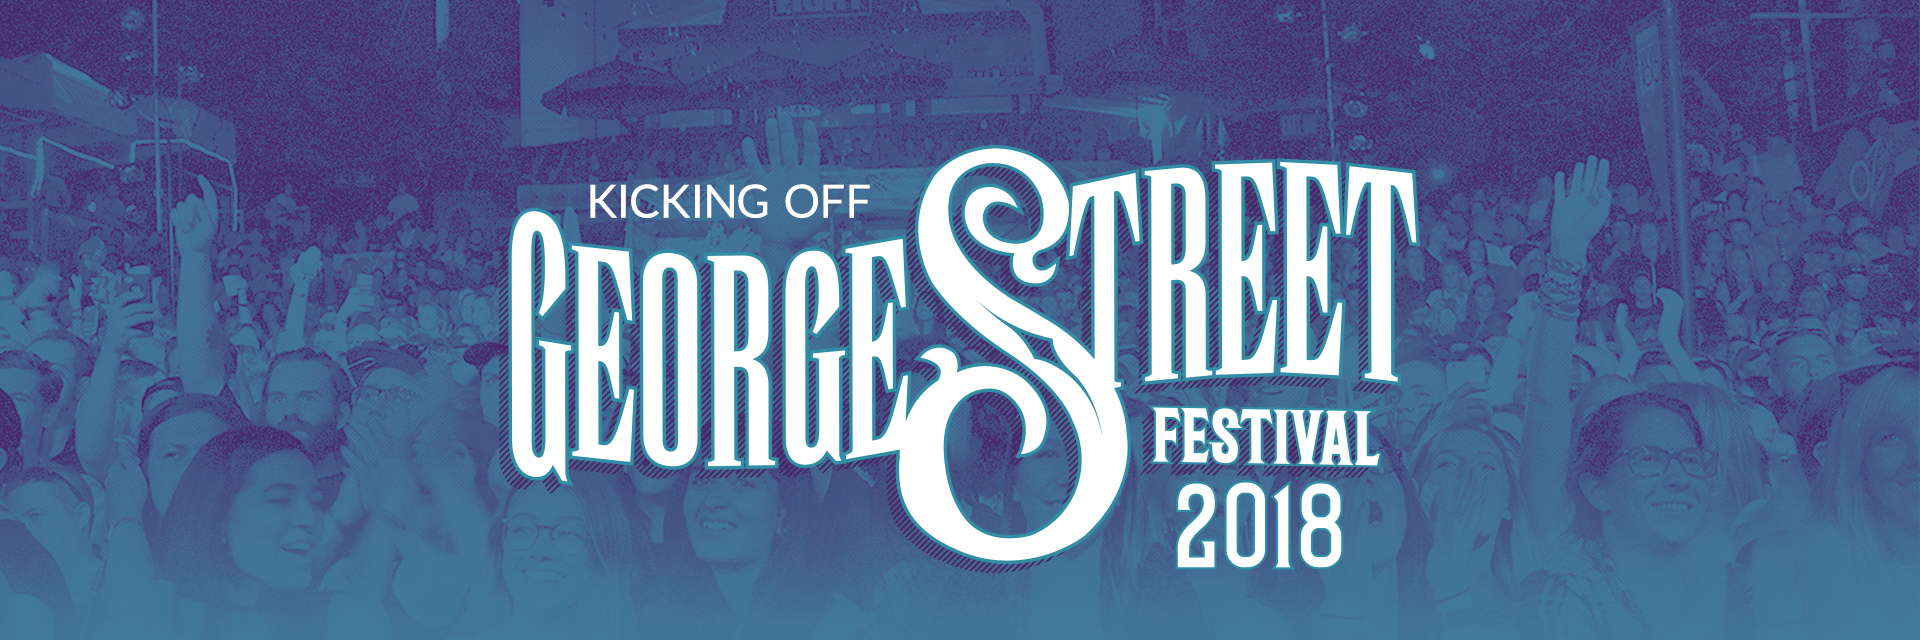 Dc Blogs: Kicking off George Street Fest 2018!